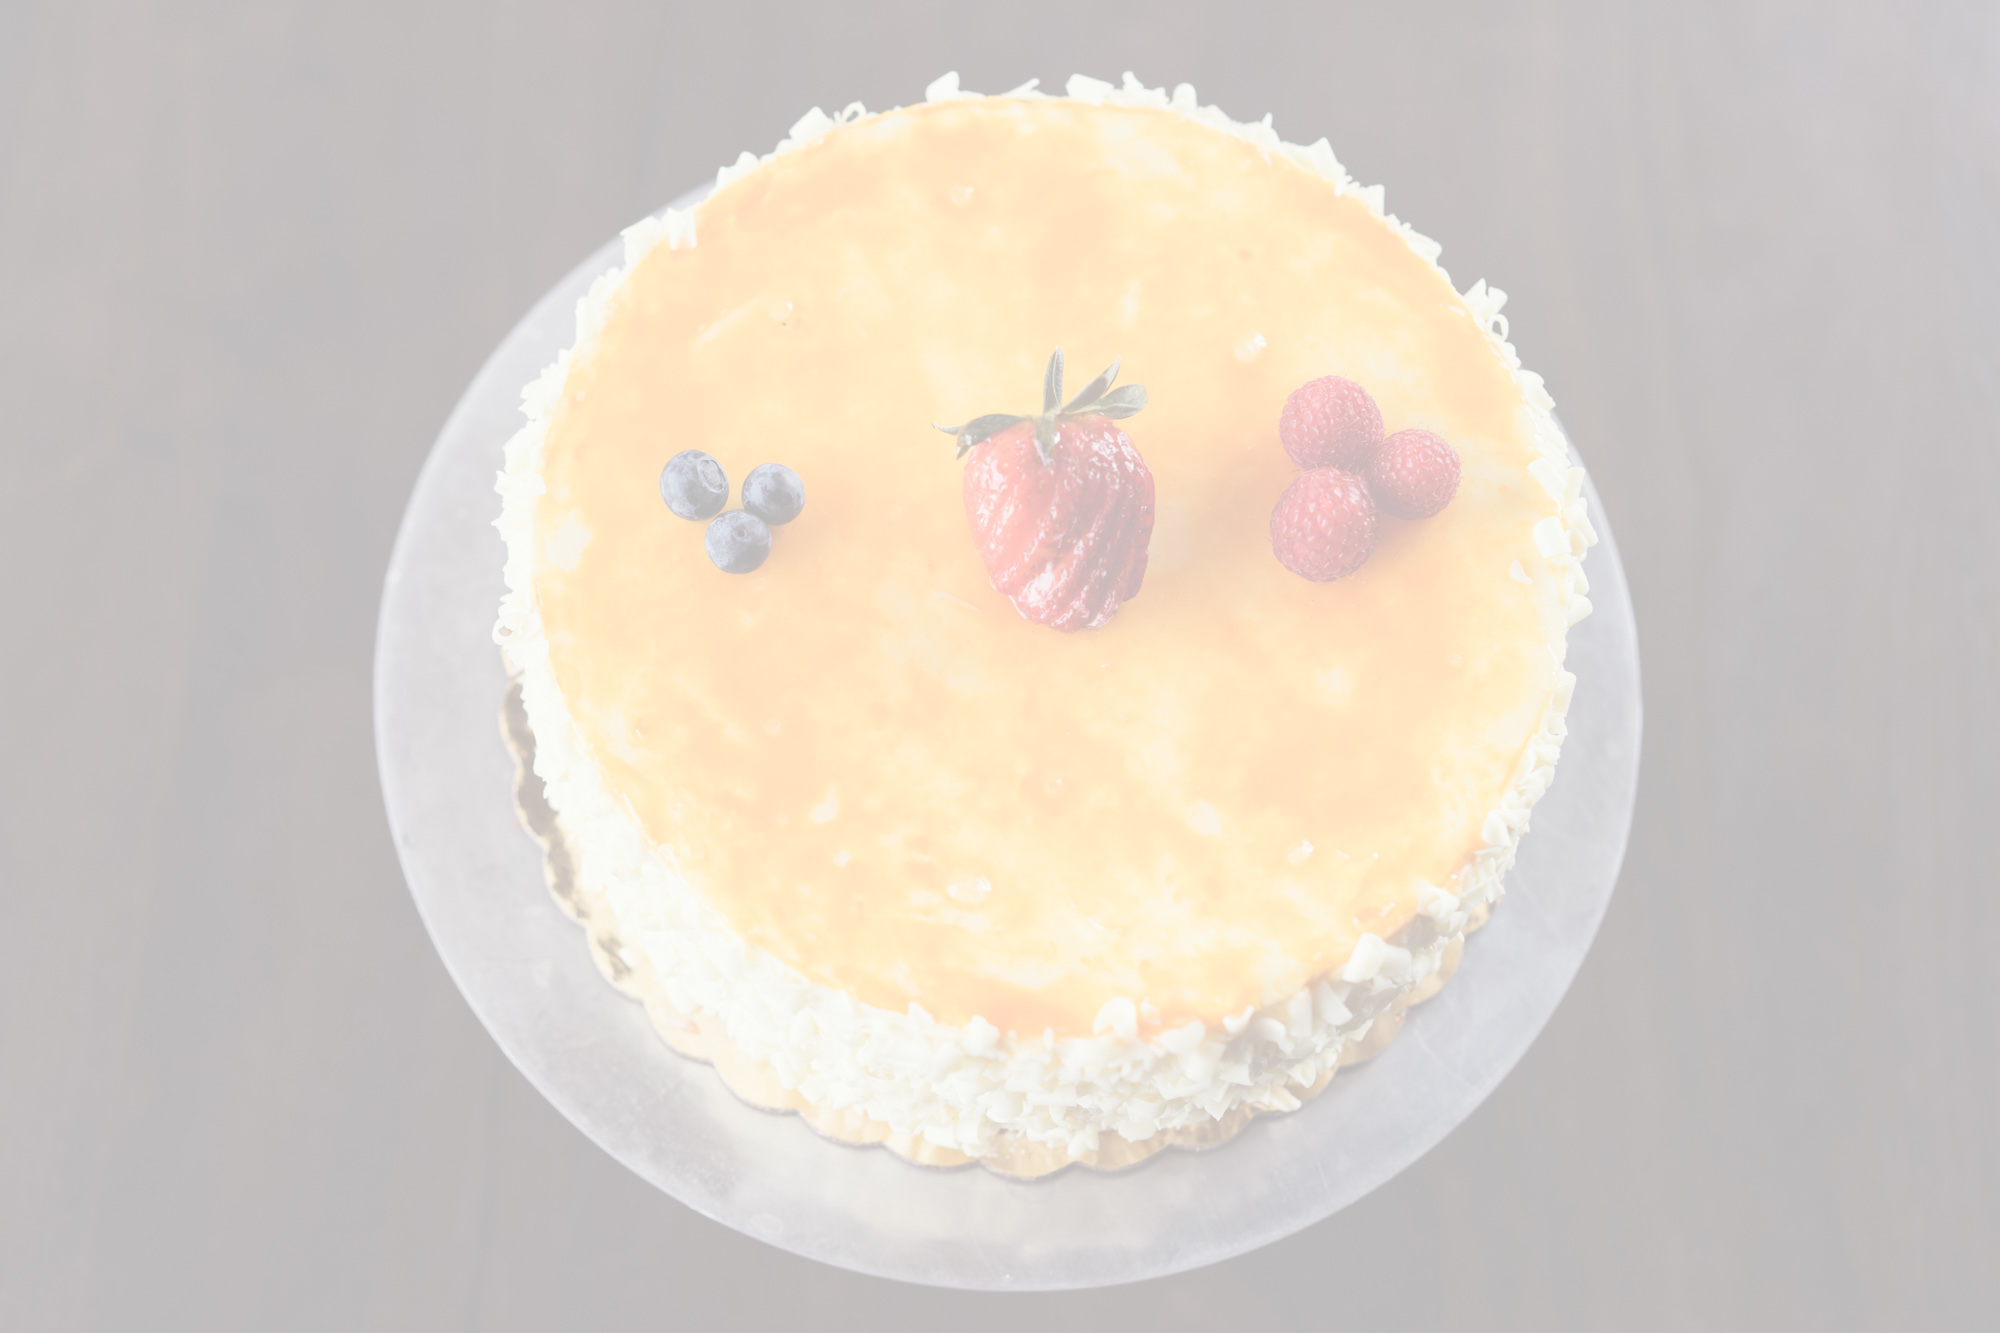 Passionfruit Mousse$43.95 - Layers of yellow cake and passionfruit mousse.